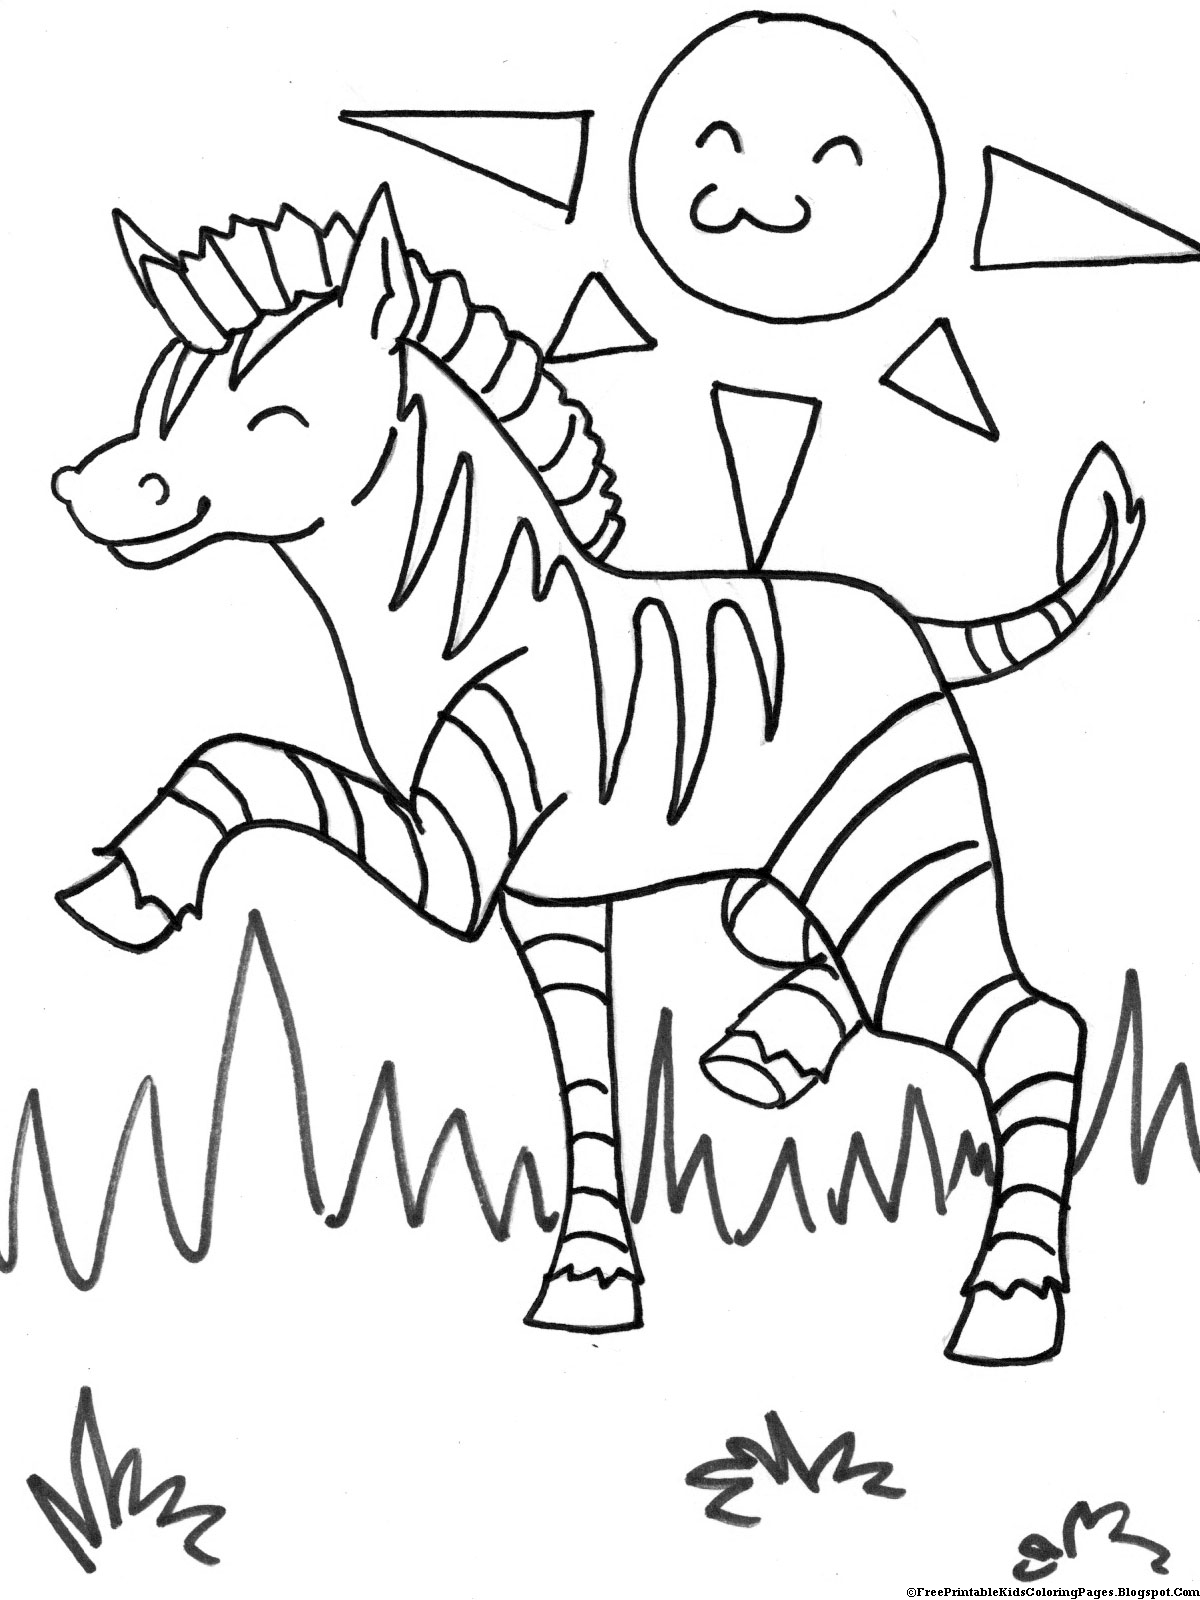 coloring page for kids balloon coloring pages for kids to print for free kids for coloring page